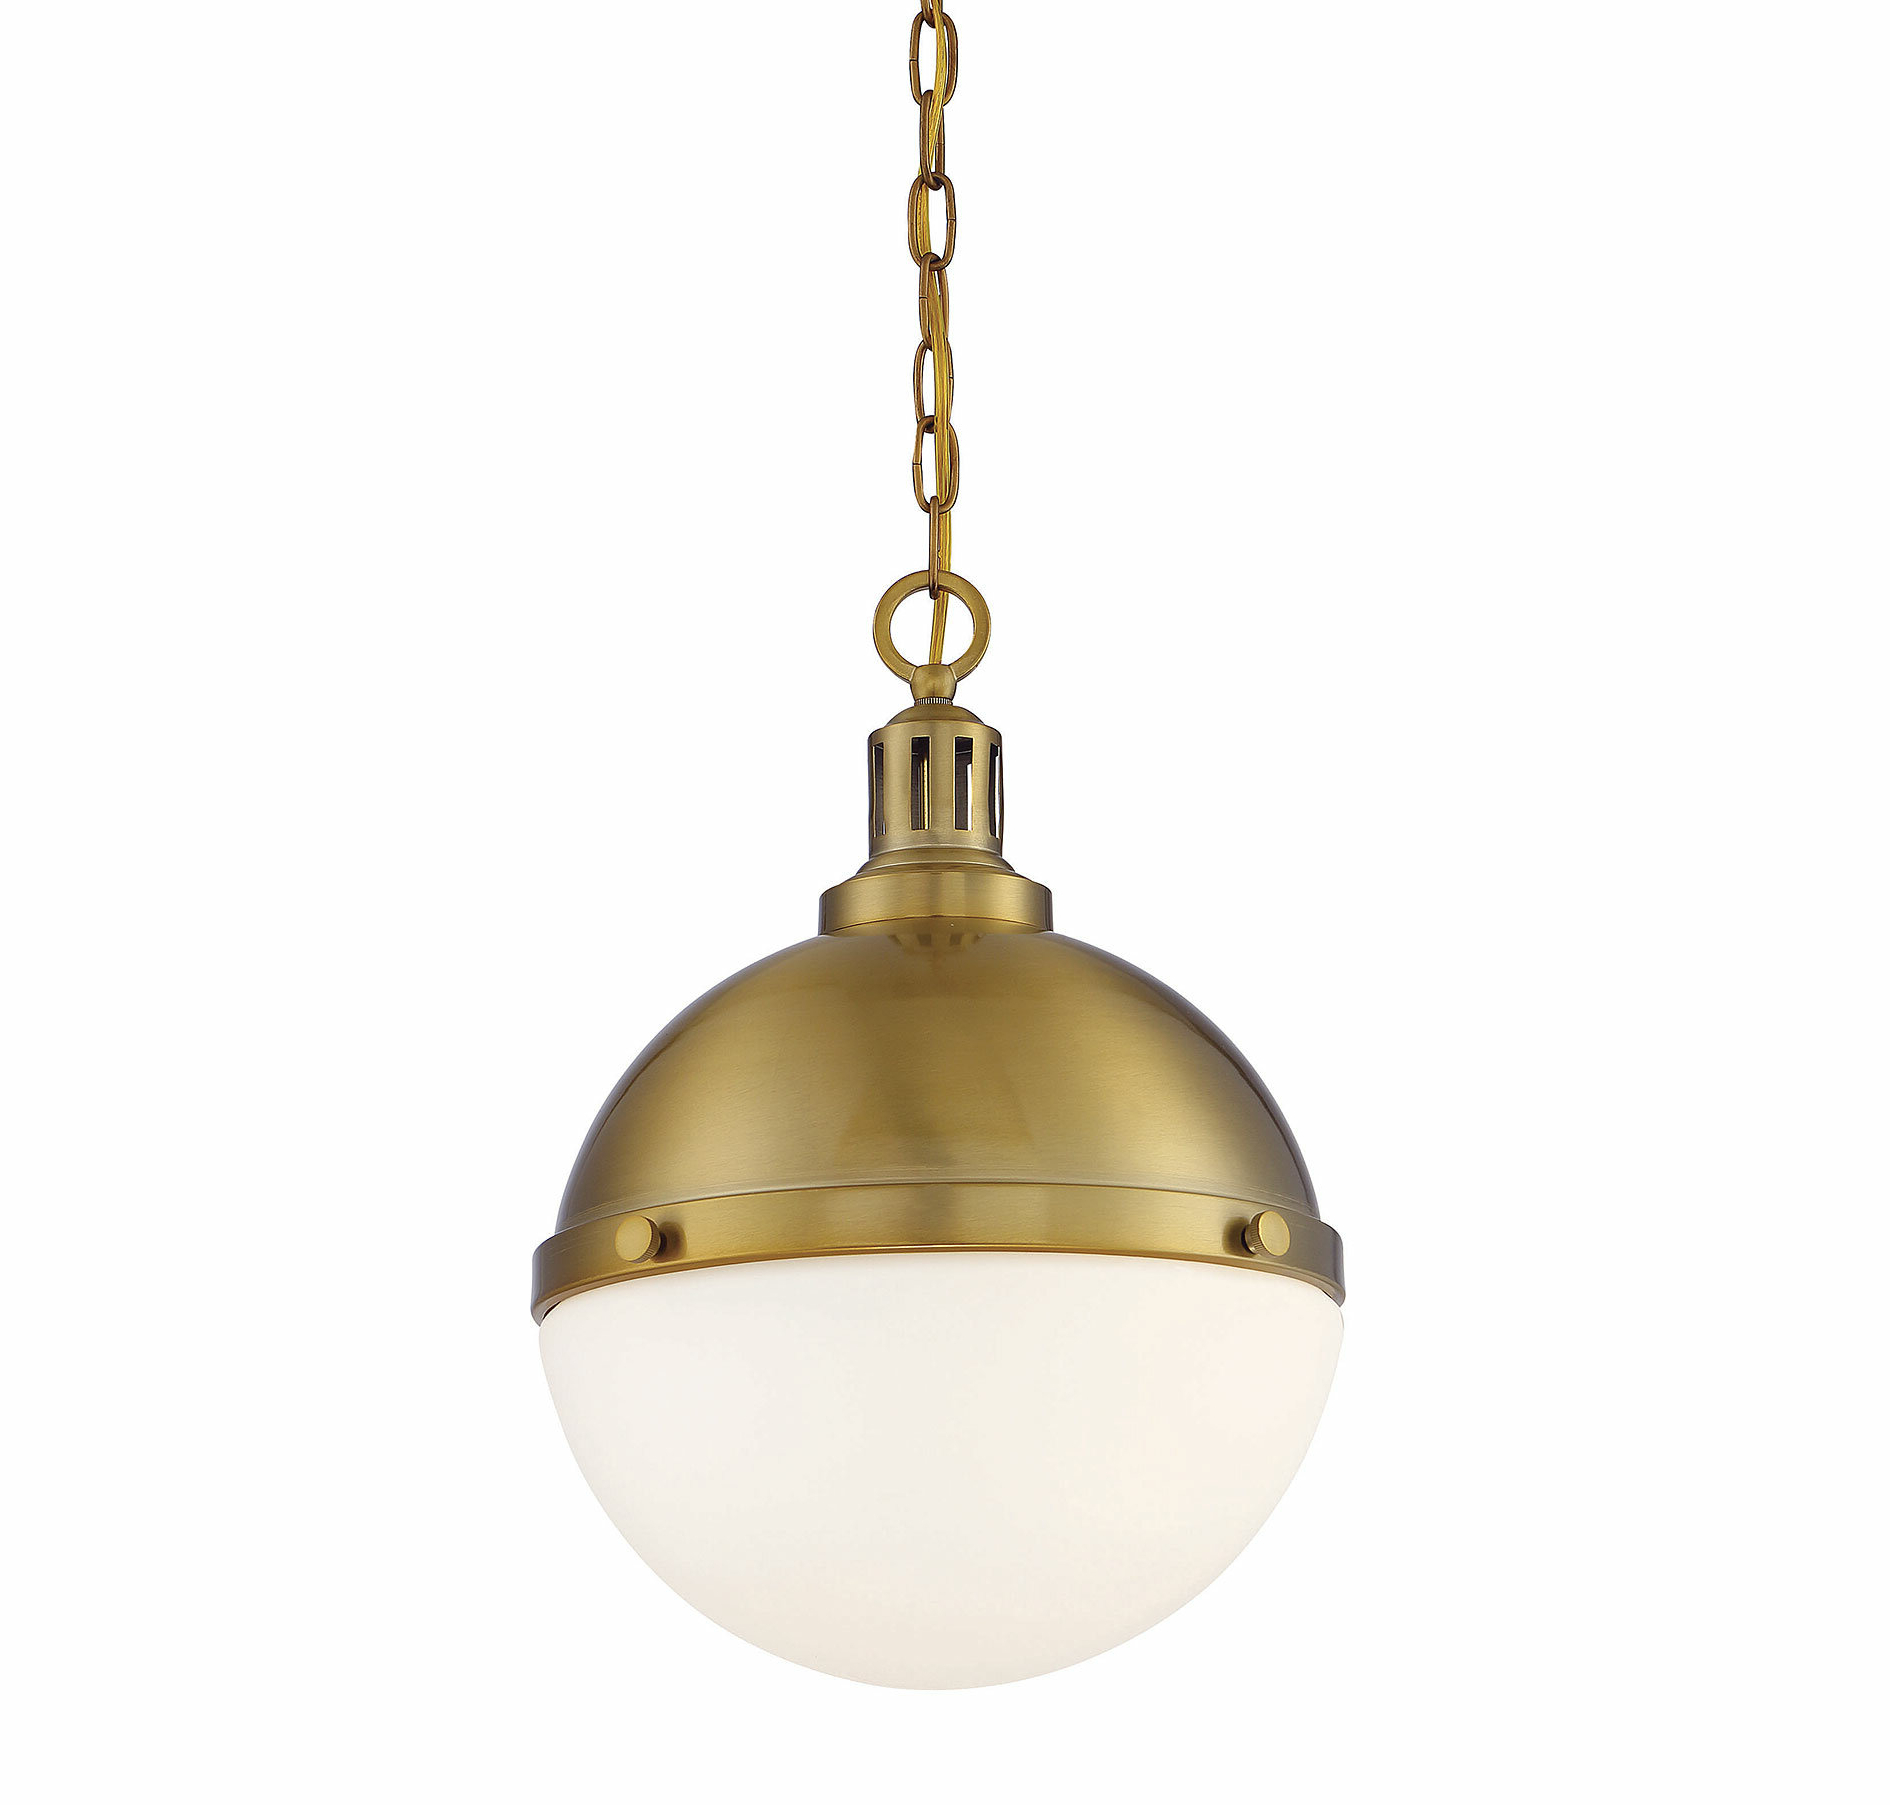 Landrum 2 Light Single Globe Pendant For Newest Prange 1 Light Single Globe Pendants (View 23 of 25)